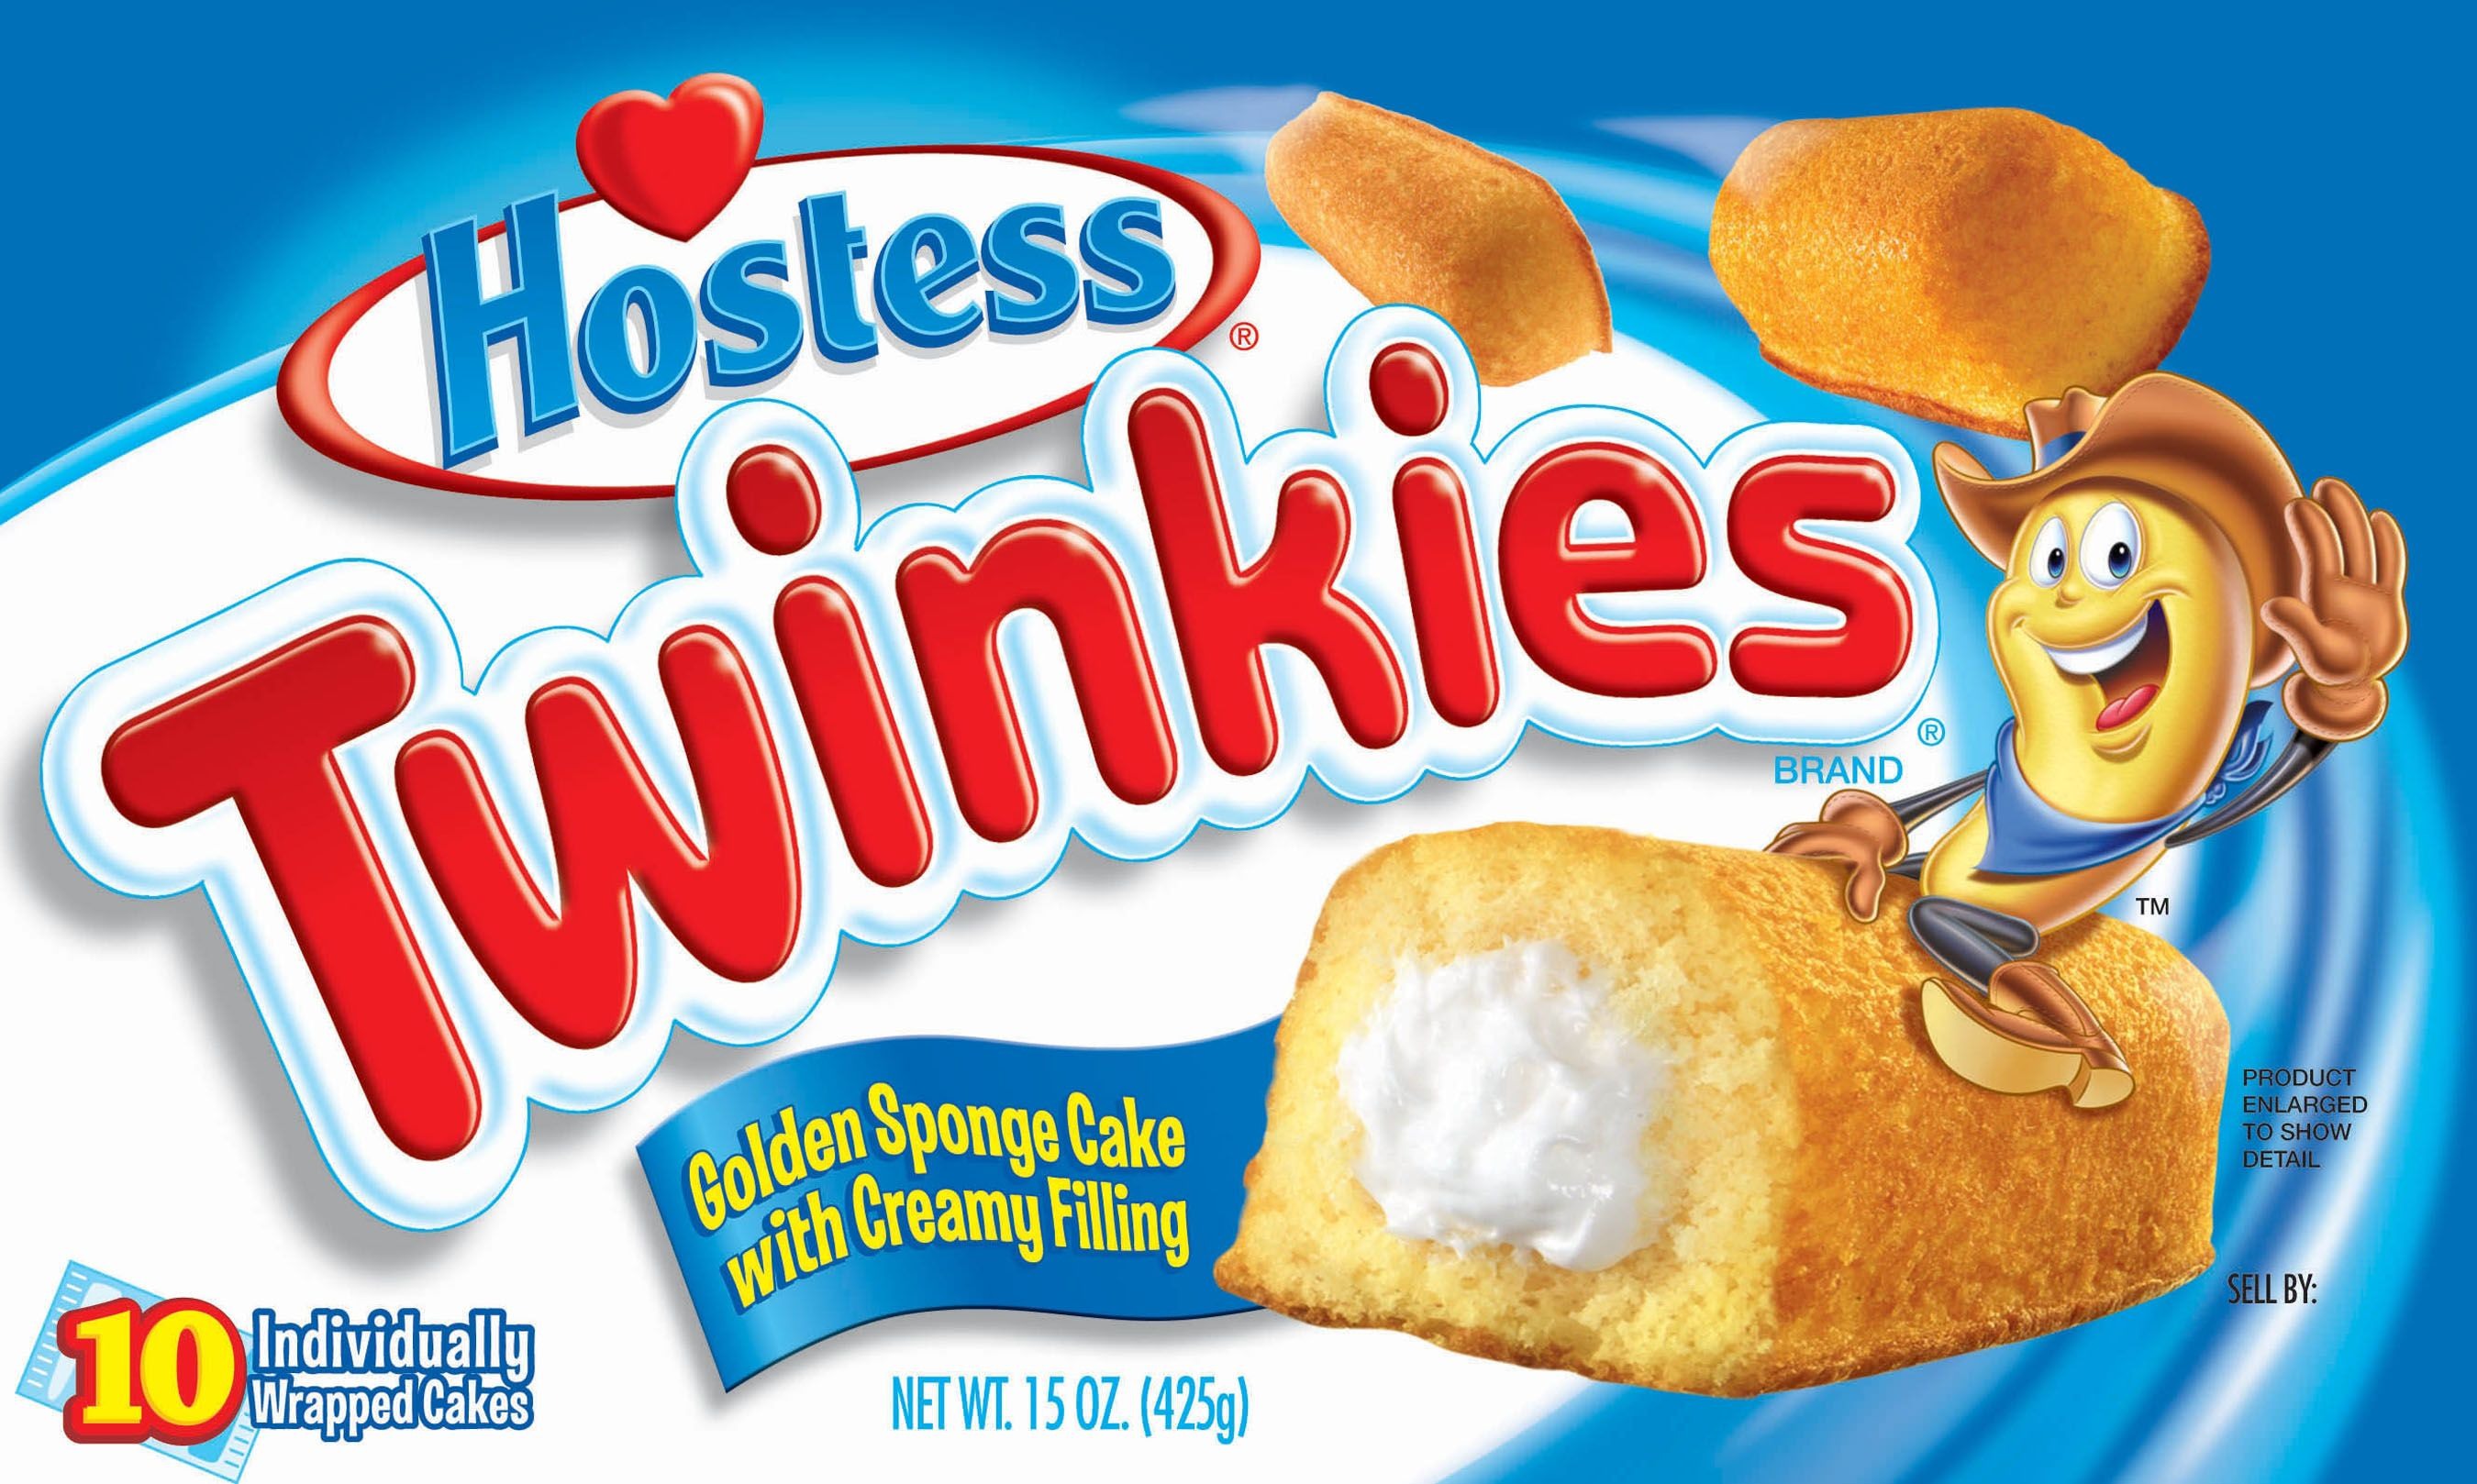 With Hostess filing Chapter 11, we lose a piece of history and childhood. Now we'll never know what really is in middle!?!?!?